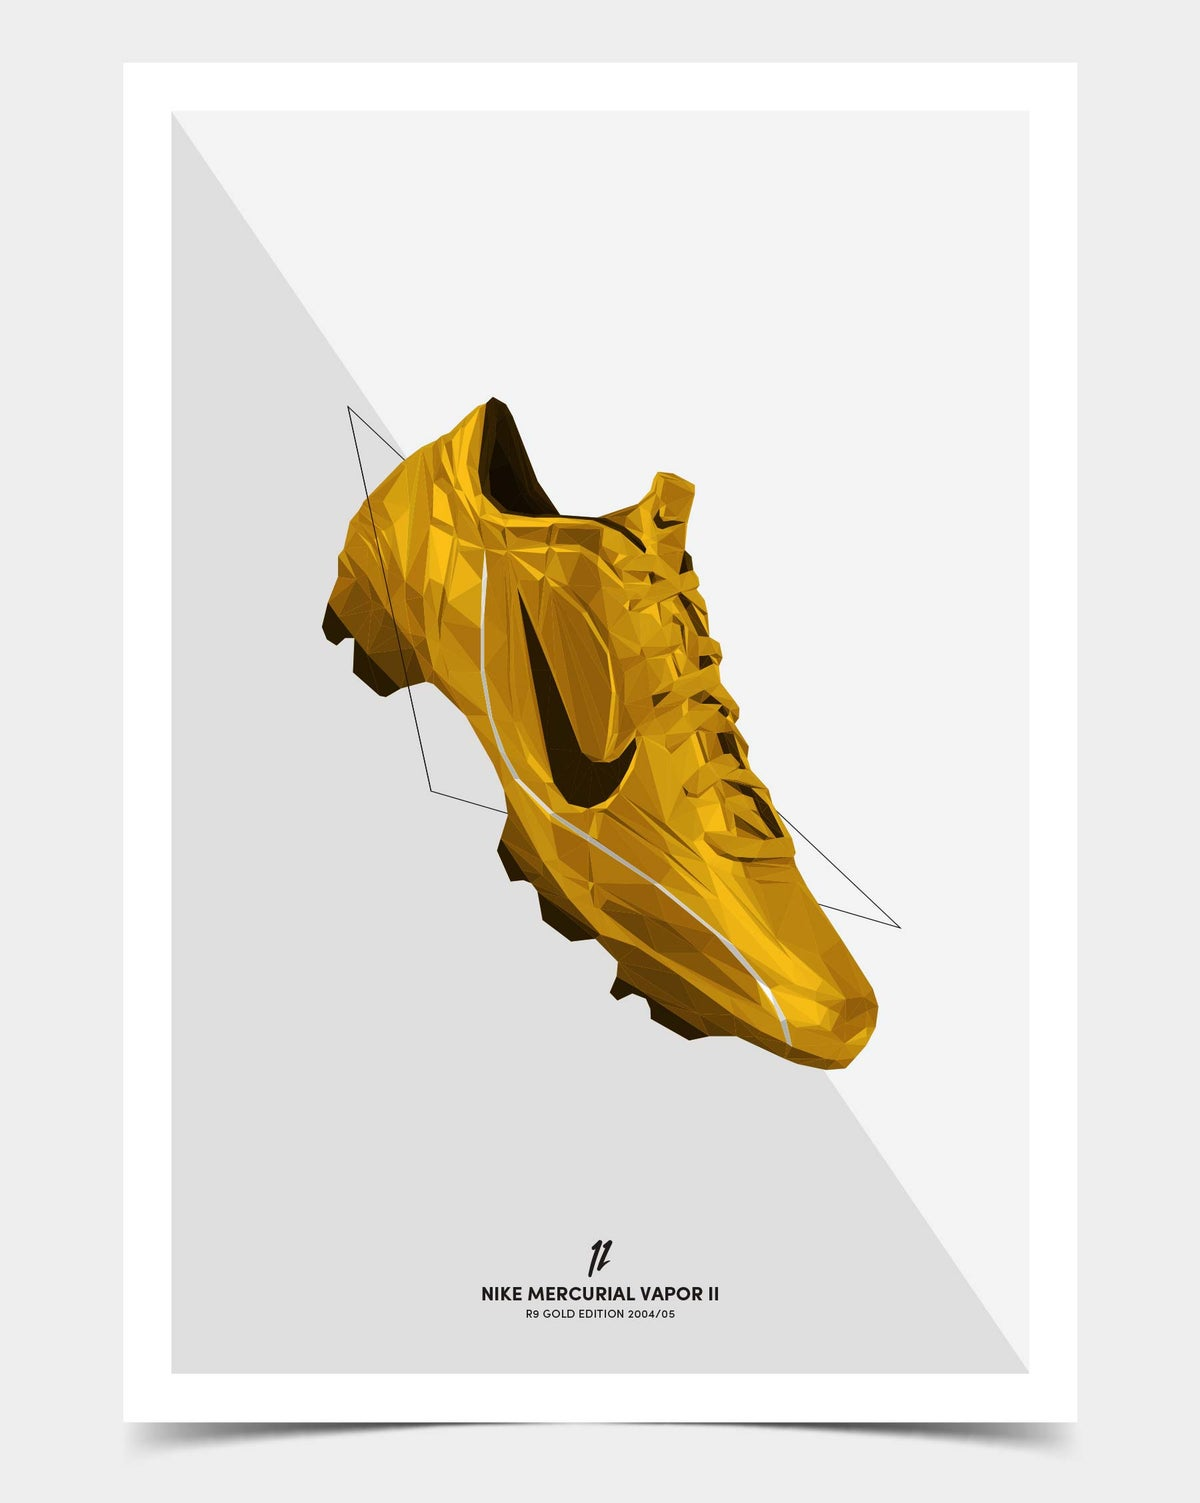 Image of Mercurial Vapor ii Gold Edition